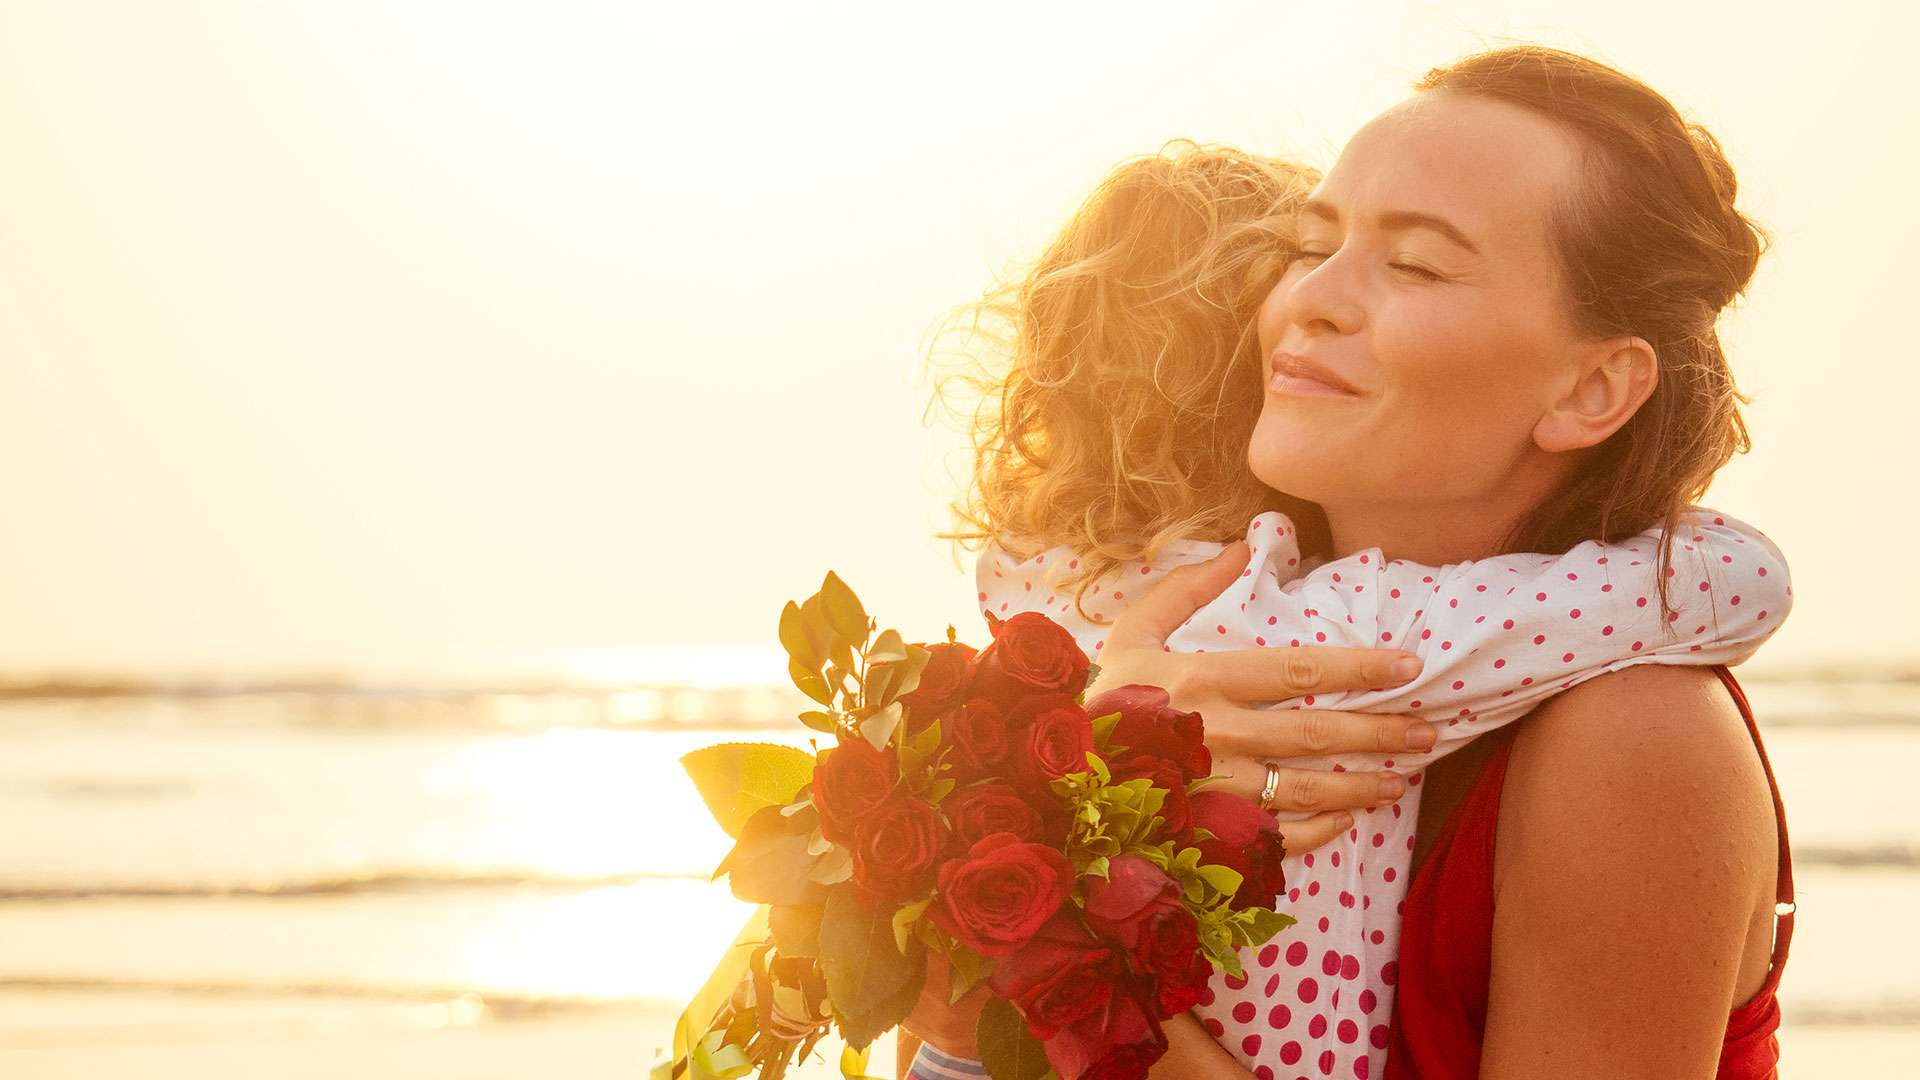 Mother And Daughter Celebrating Mothers Day On The Beach